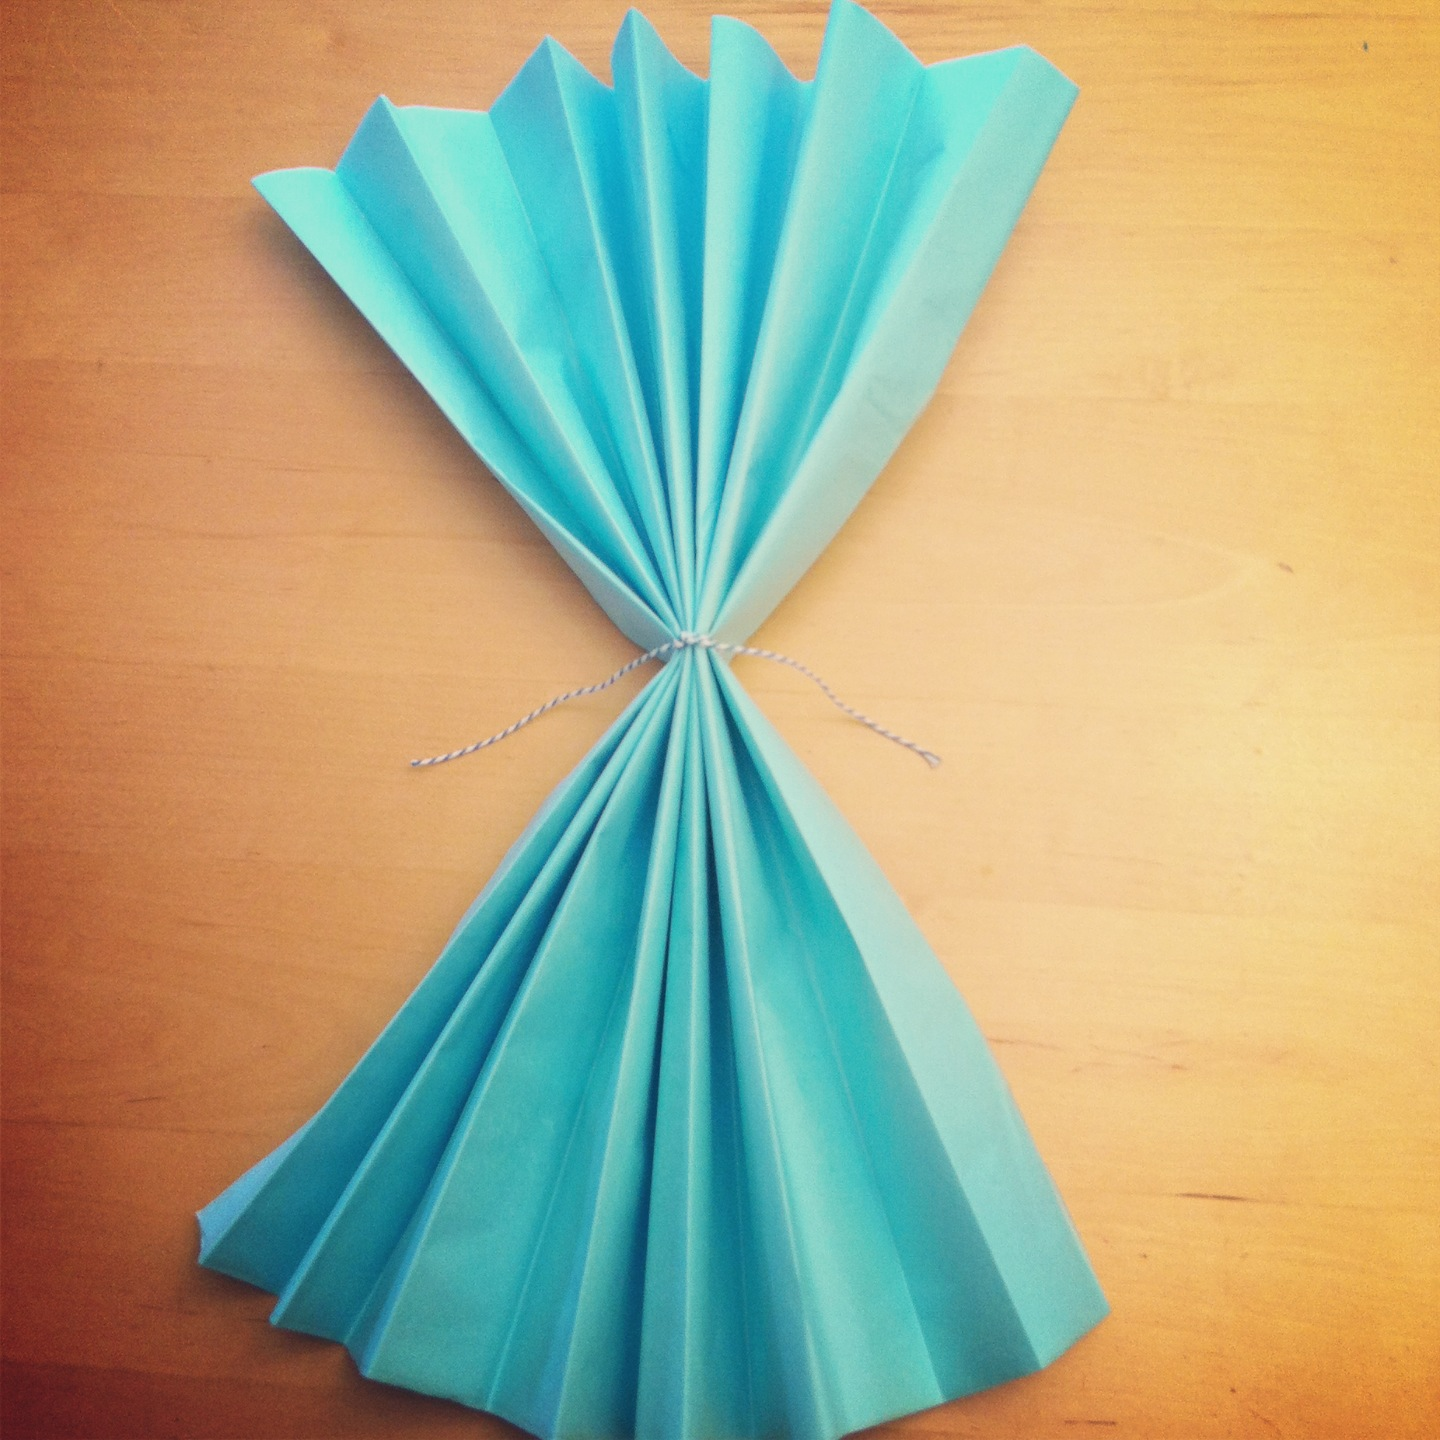 Tutorial How To Make DIY Giant Tissue Paper Flowers